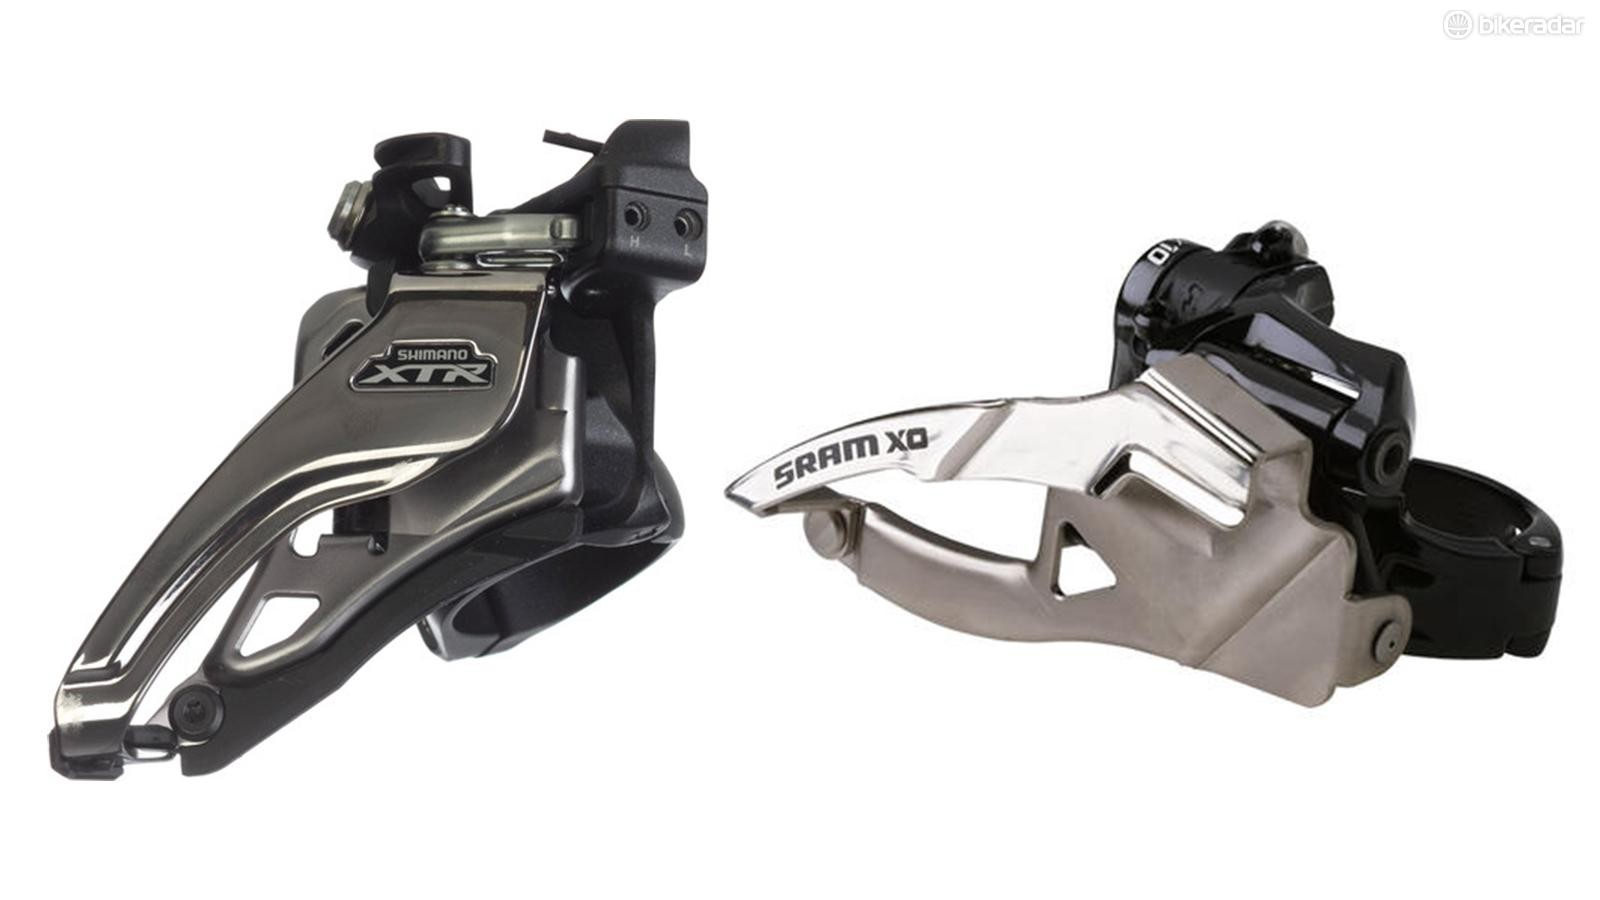 Front derailleurs move the chain between the chainrings